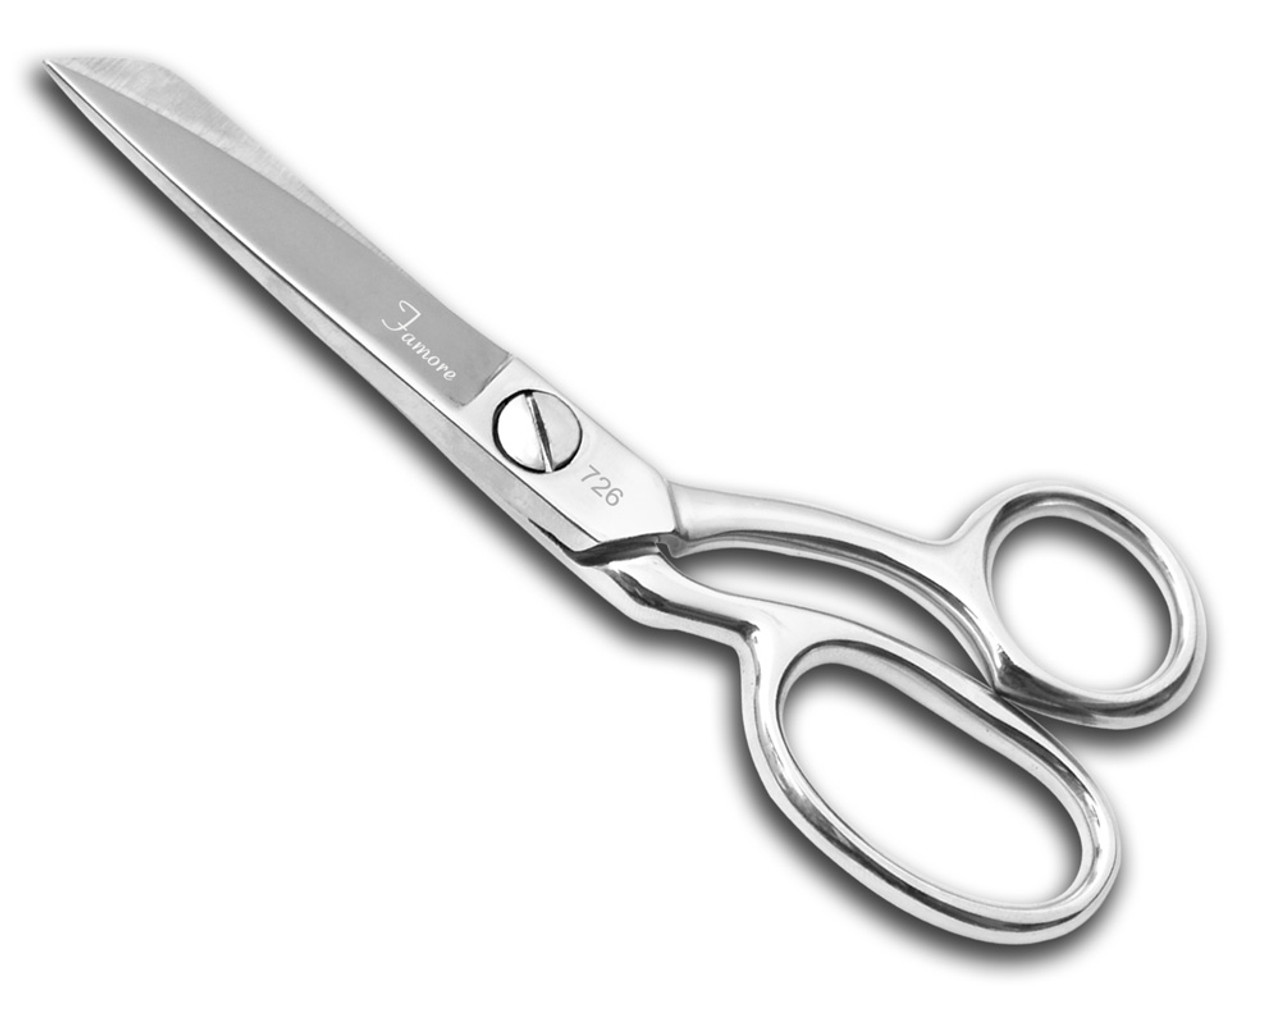 Bent Trimmer fabric Shears (6-in) item# 726